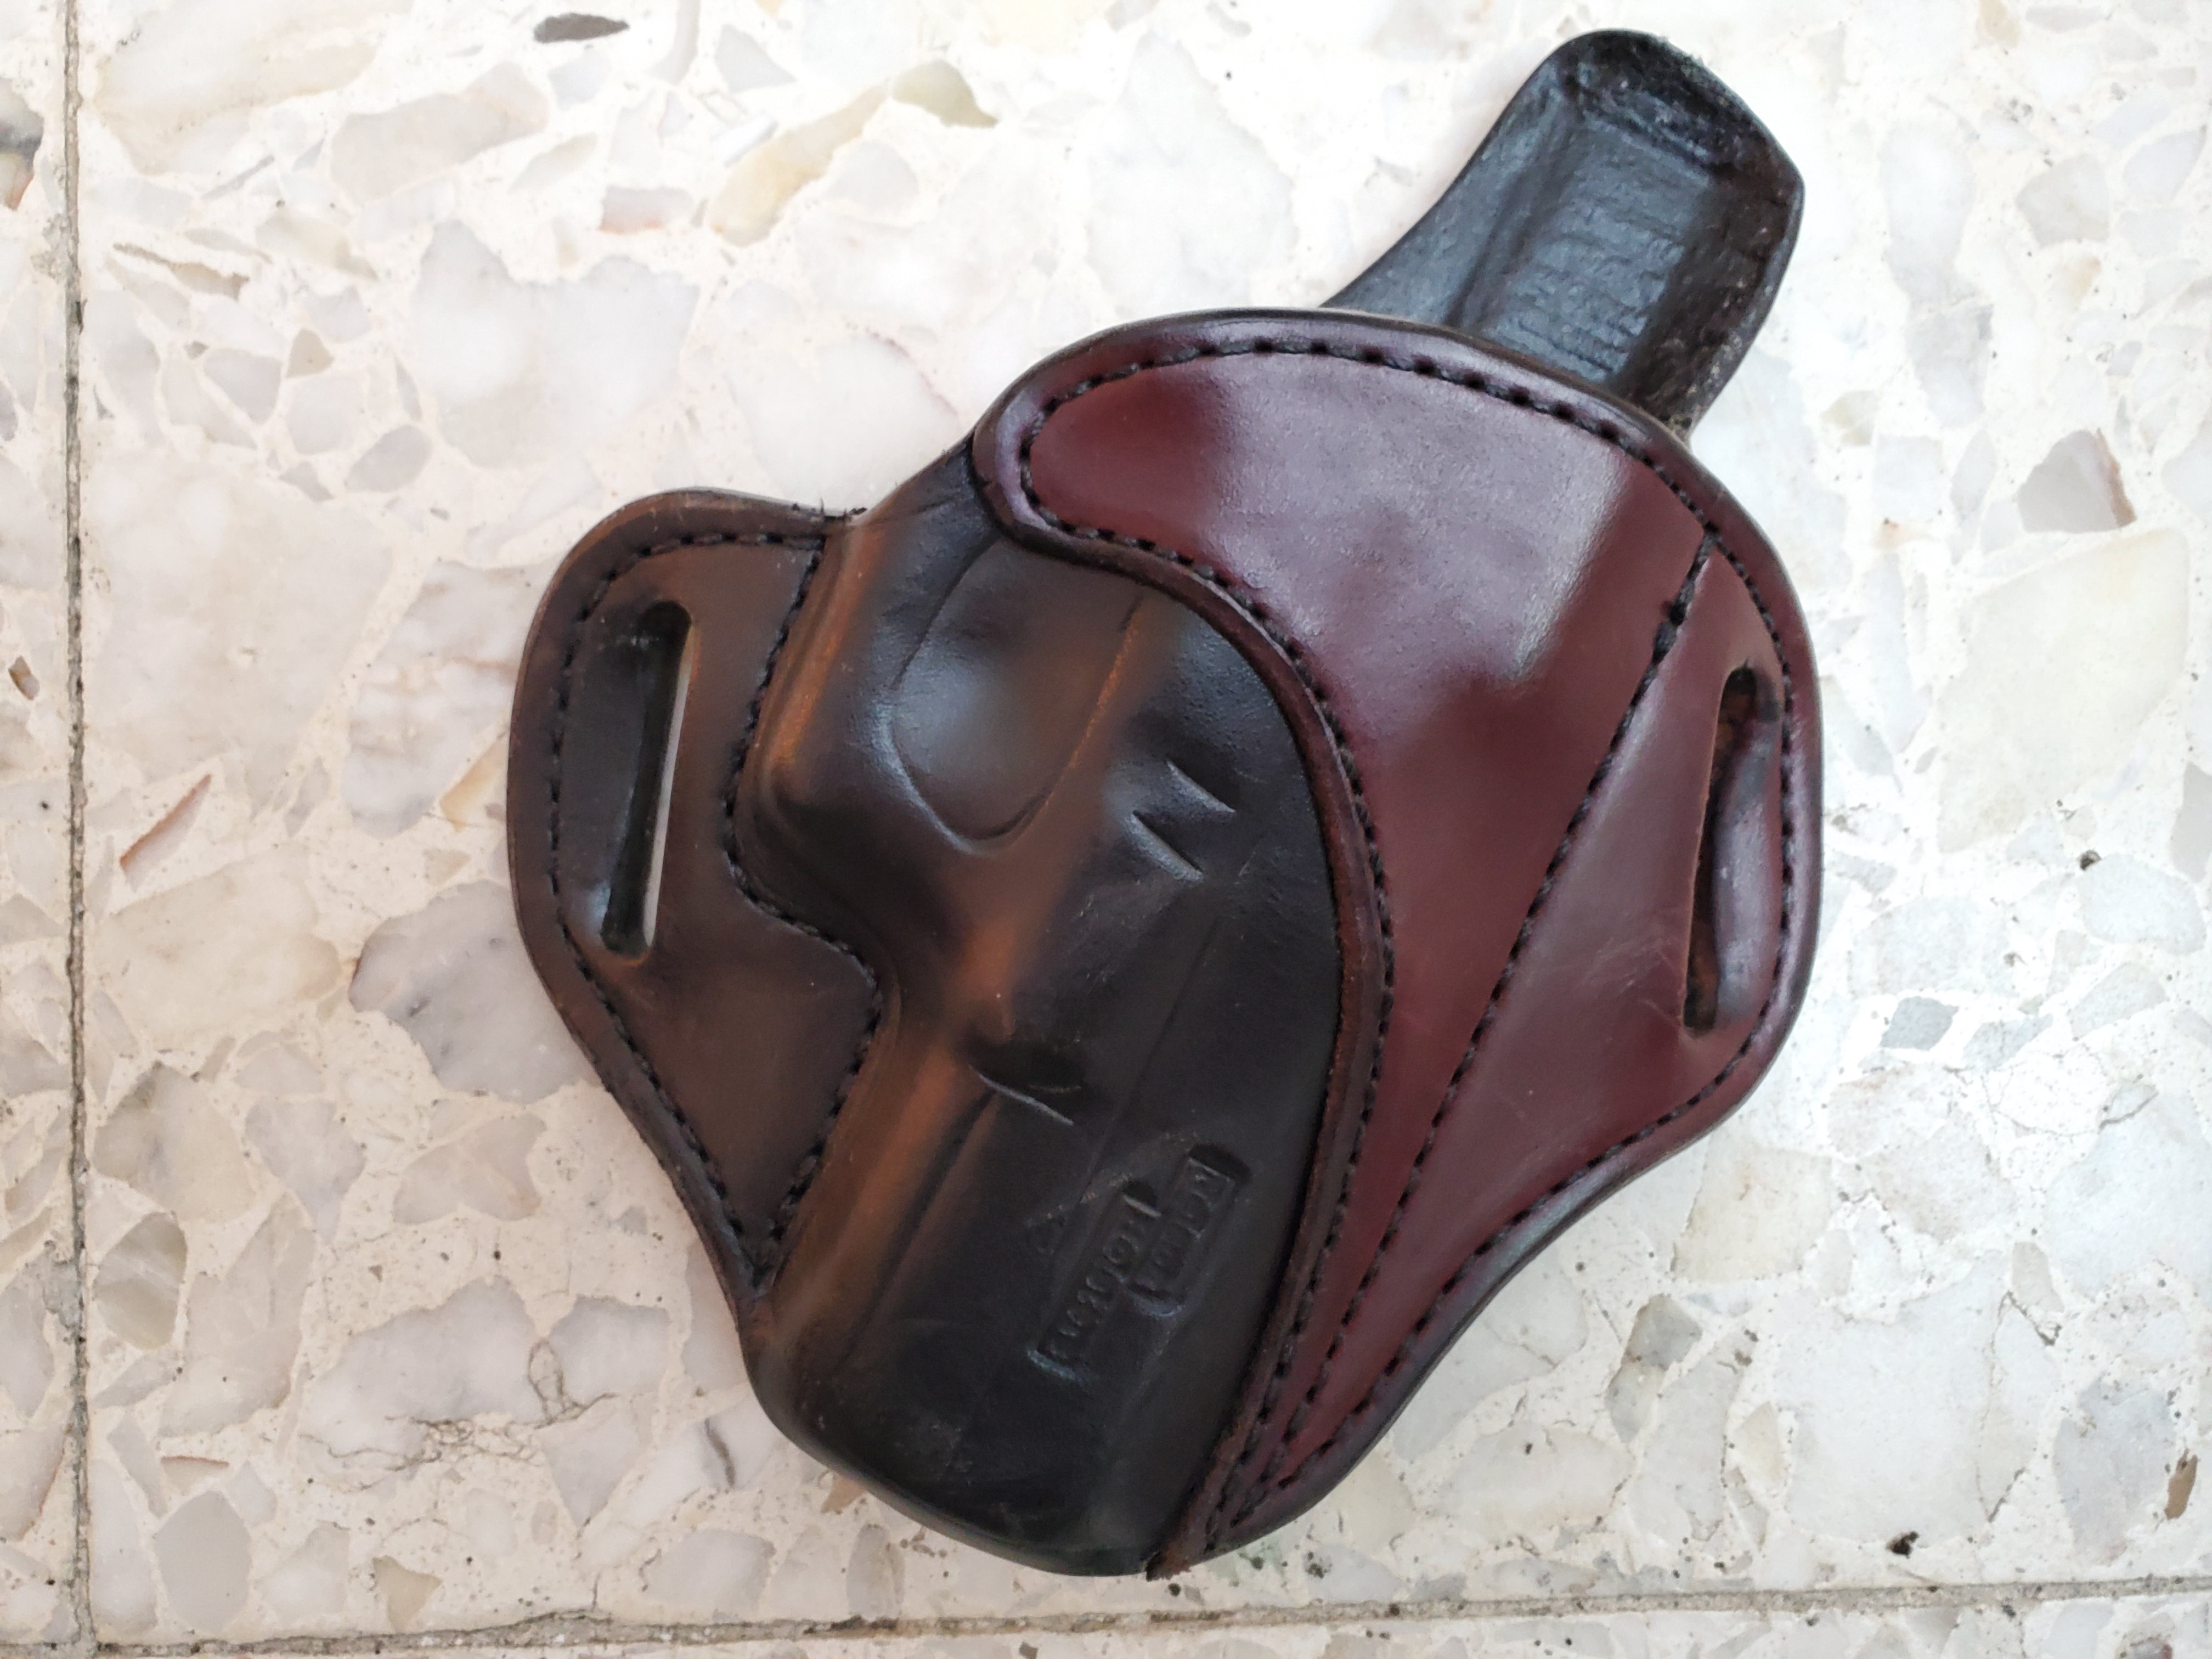 Nelson Holsters Glock 19 Holster and Mag Pouch-20200229_180806.jpg